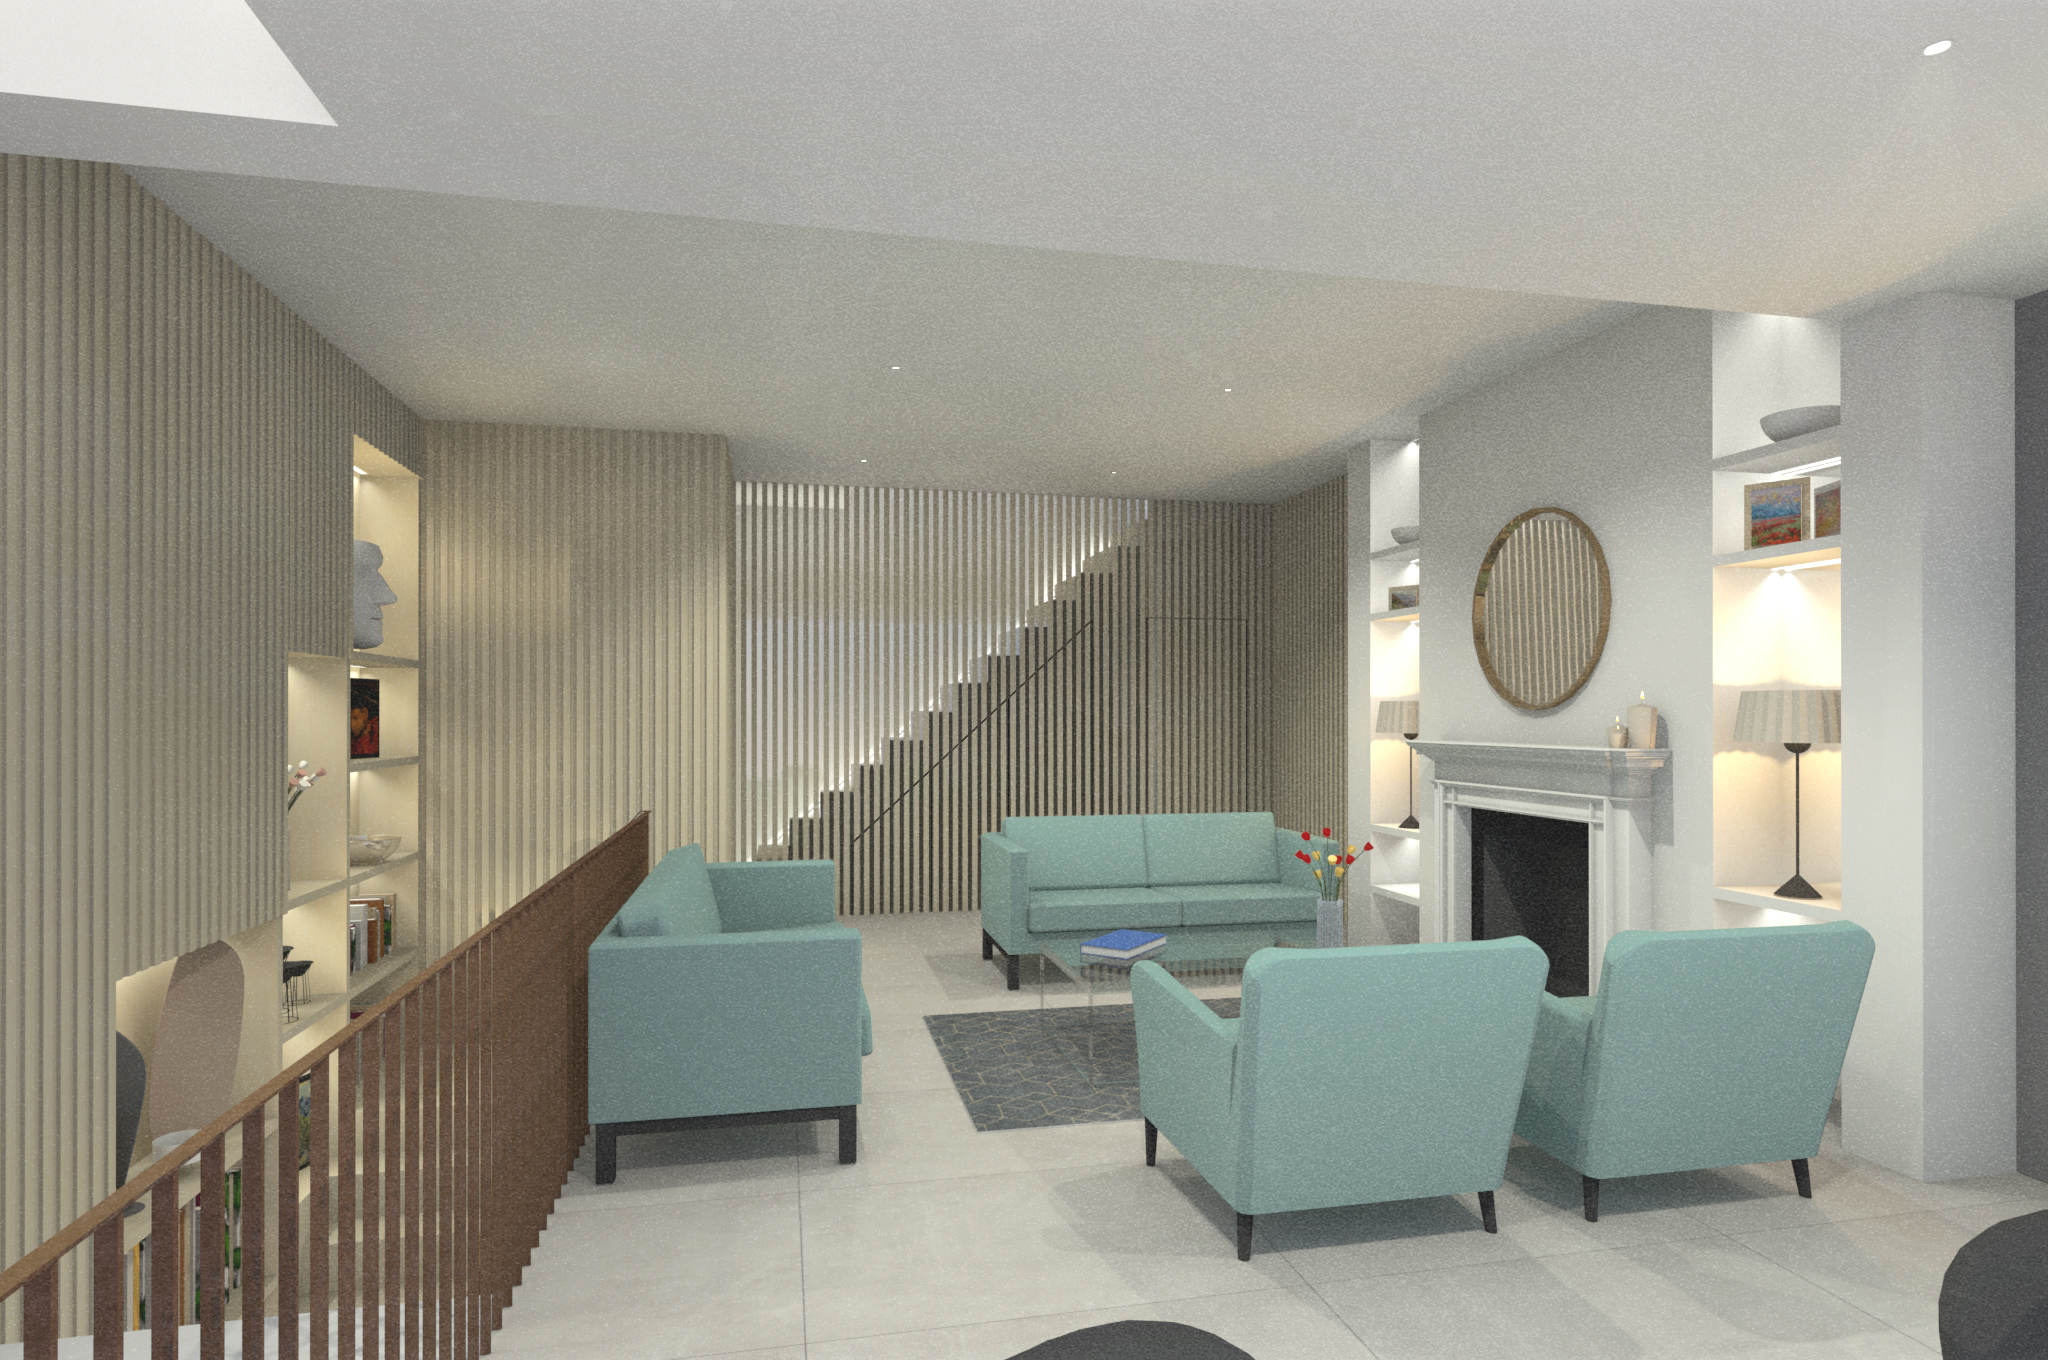 Eglantine Road Wandsworth Internal Reconfiguration 02